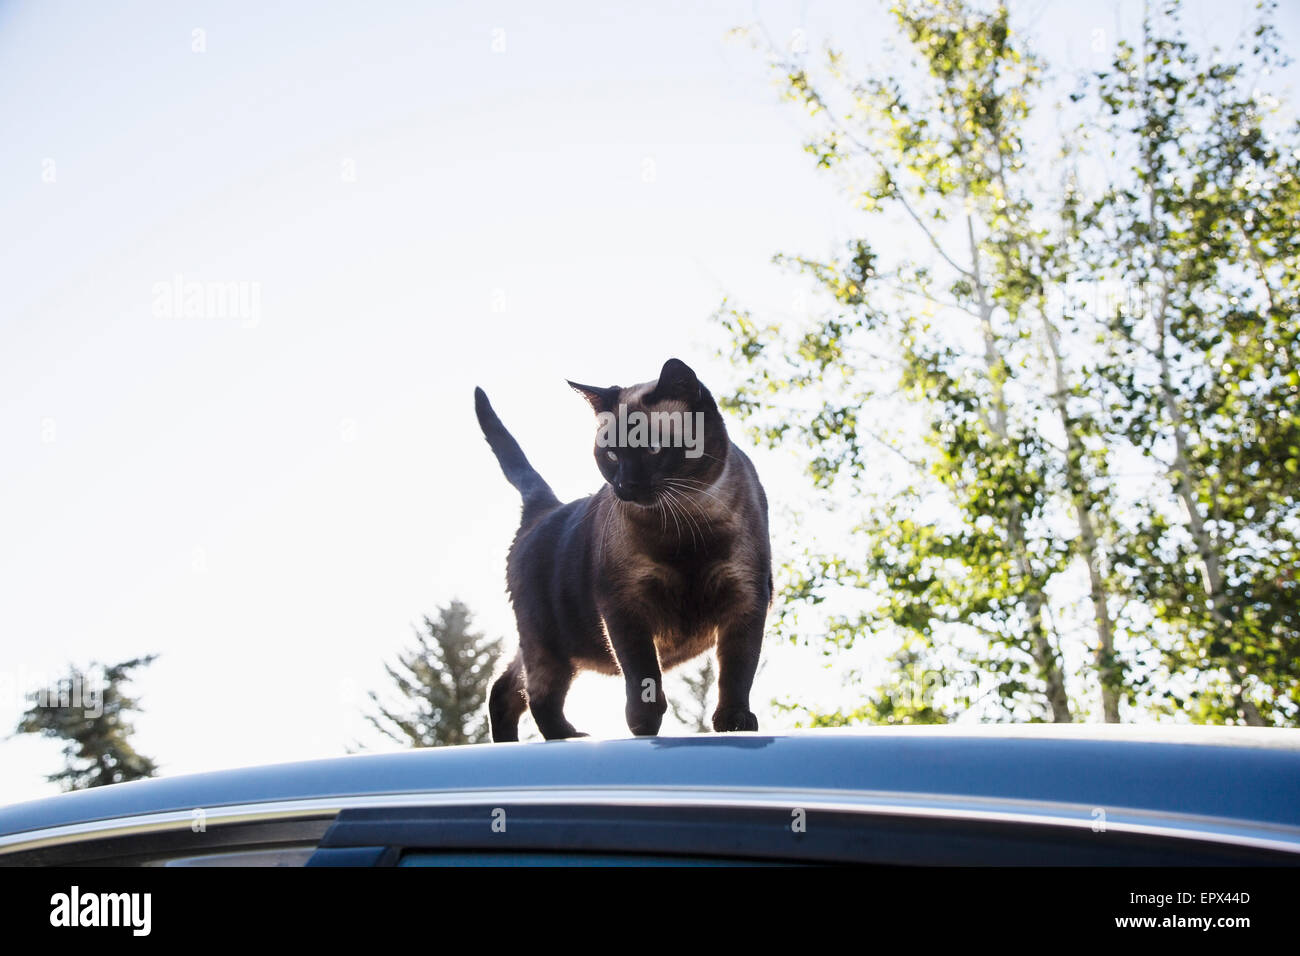 Cat on roof of car - Stock Image